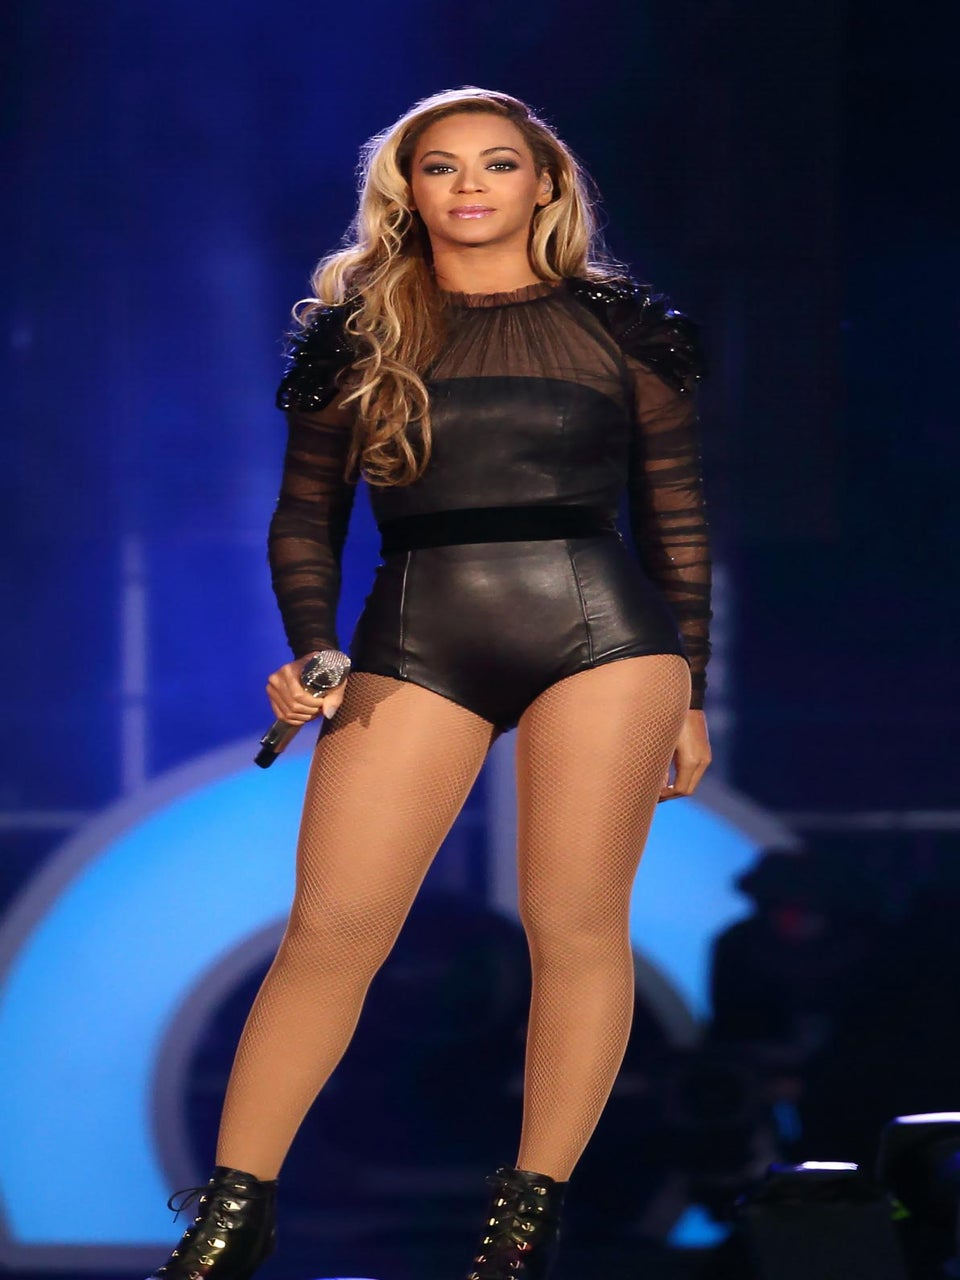 Must-See: Watch Beyoncé's 'Chime for Change' Performance